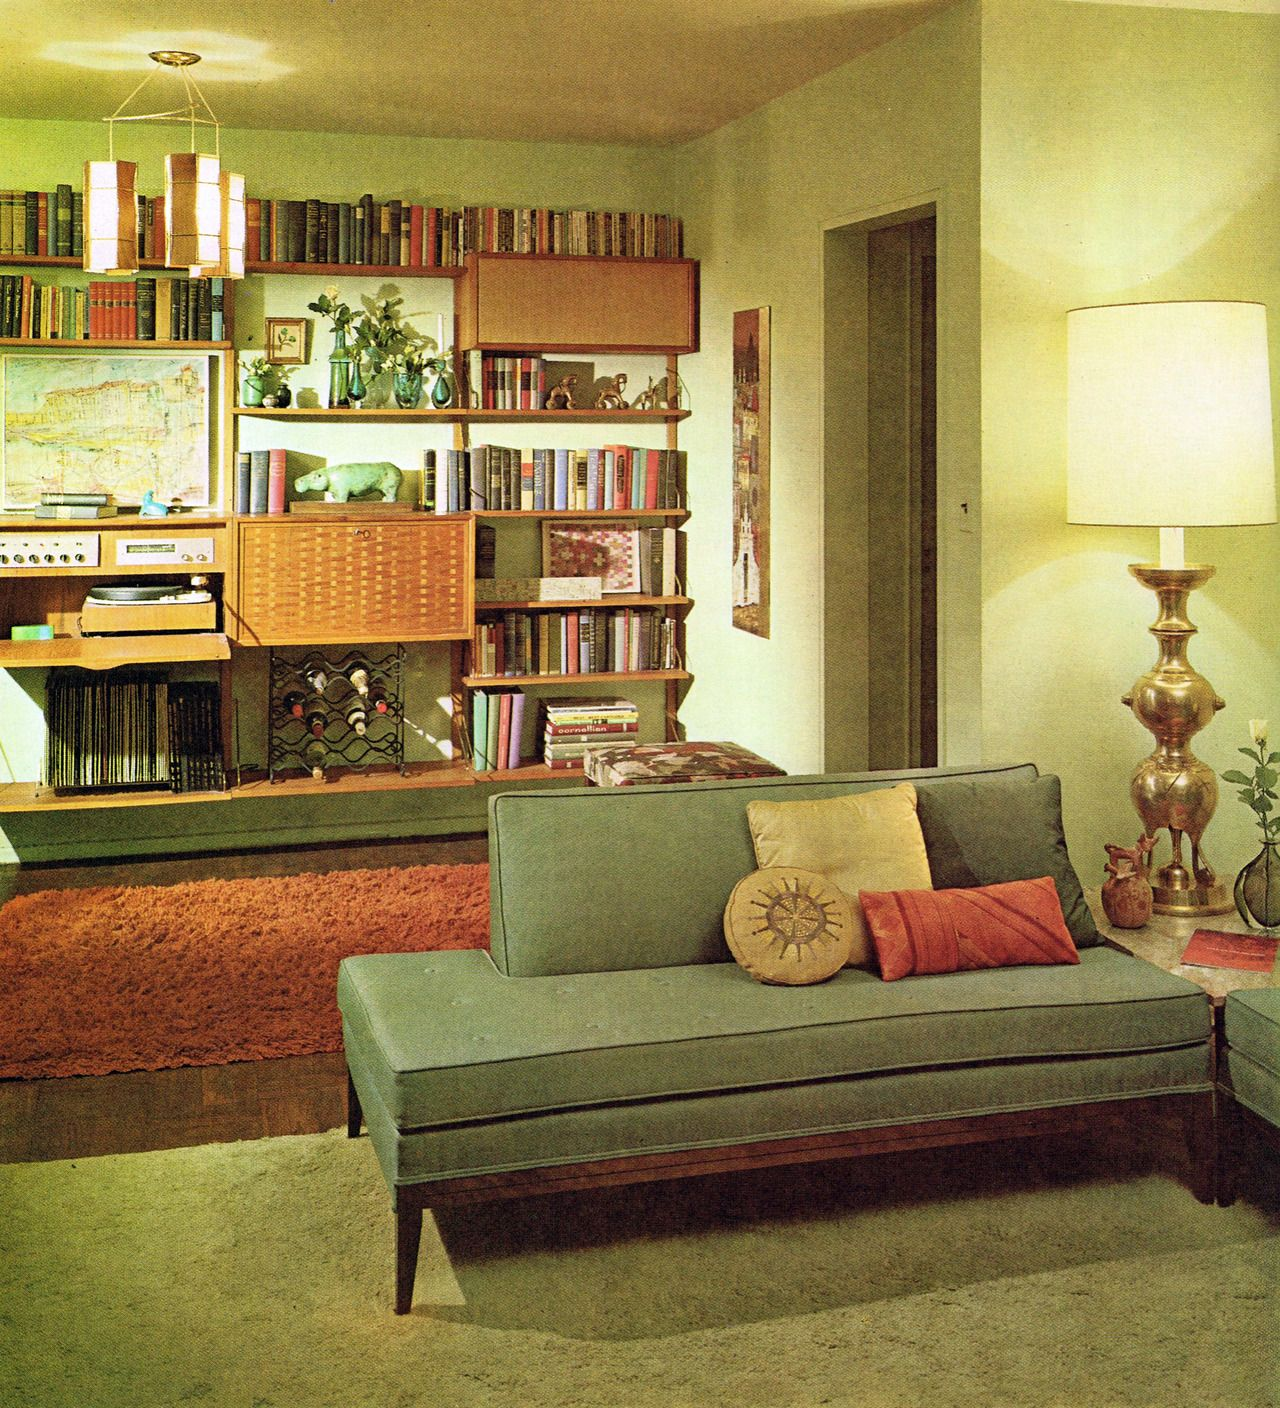 1960s Living Room Another One Of Those Amazing Shelving Units I 39 D Kill To Have One I Love